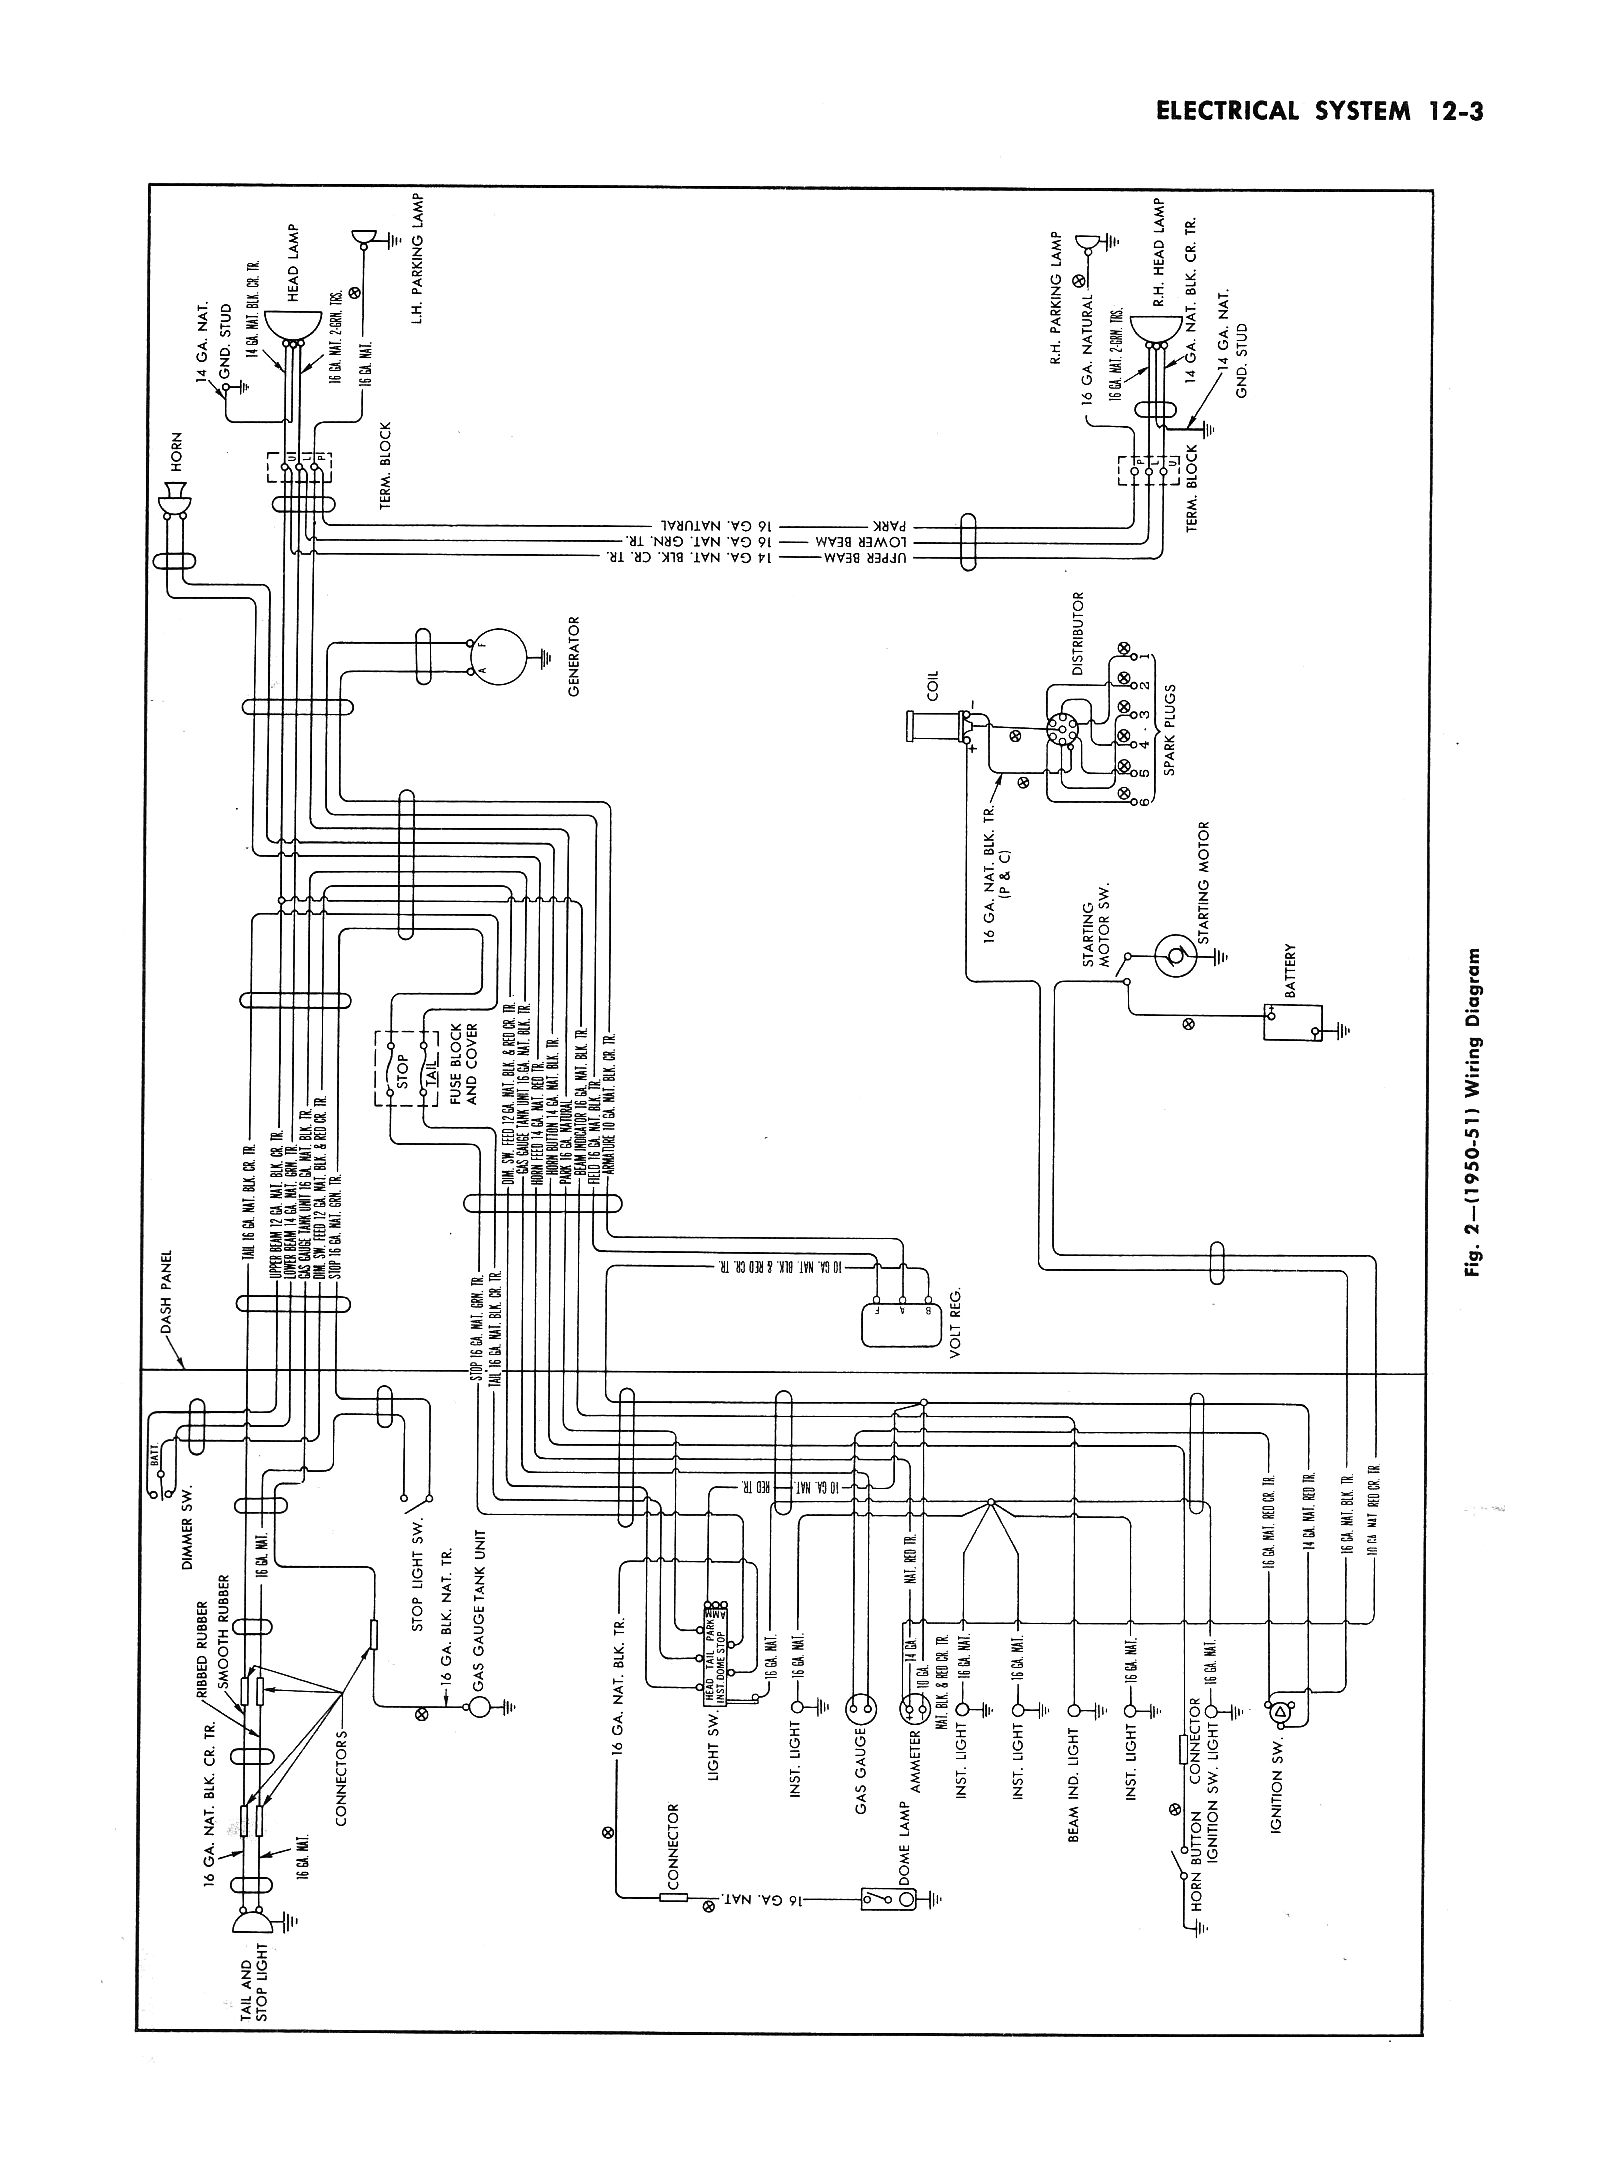 Chevy Wiring Diagrams K7 Wiring Diagram 60 Apache Wiring Diagram